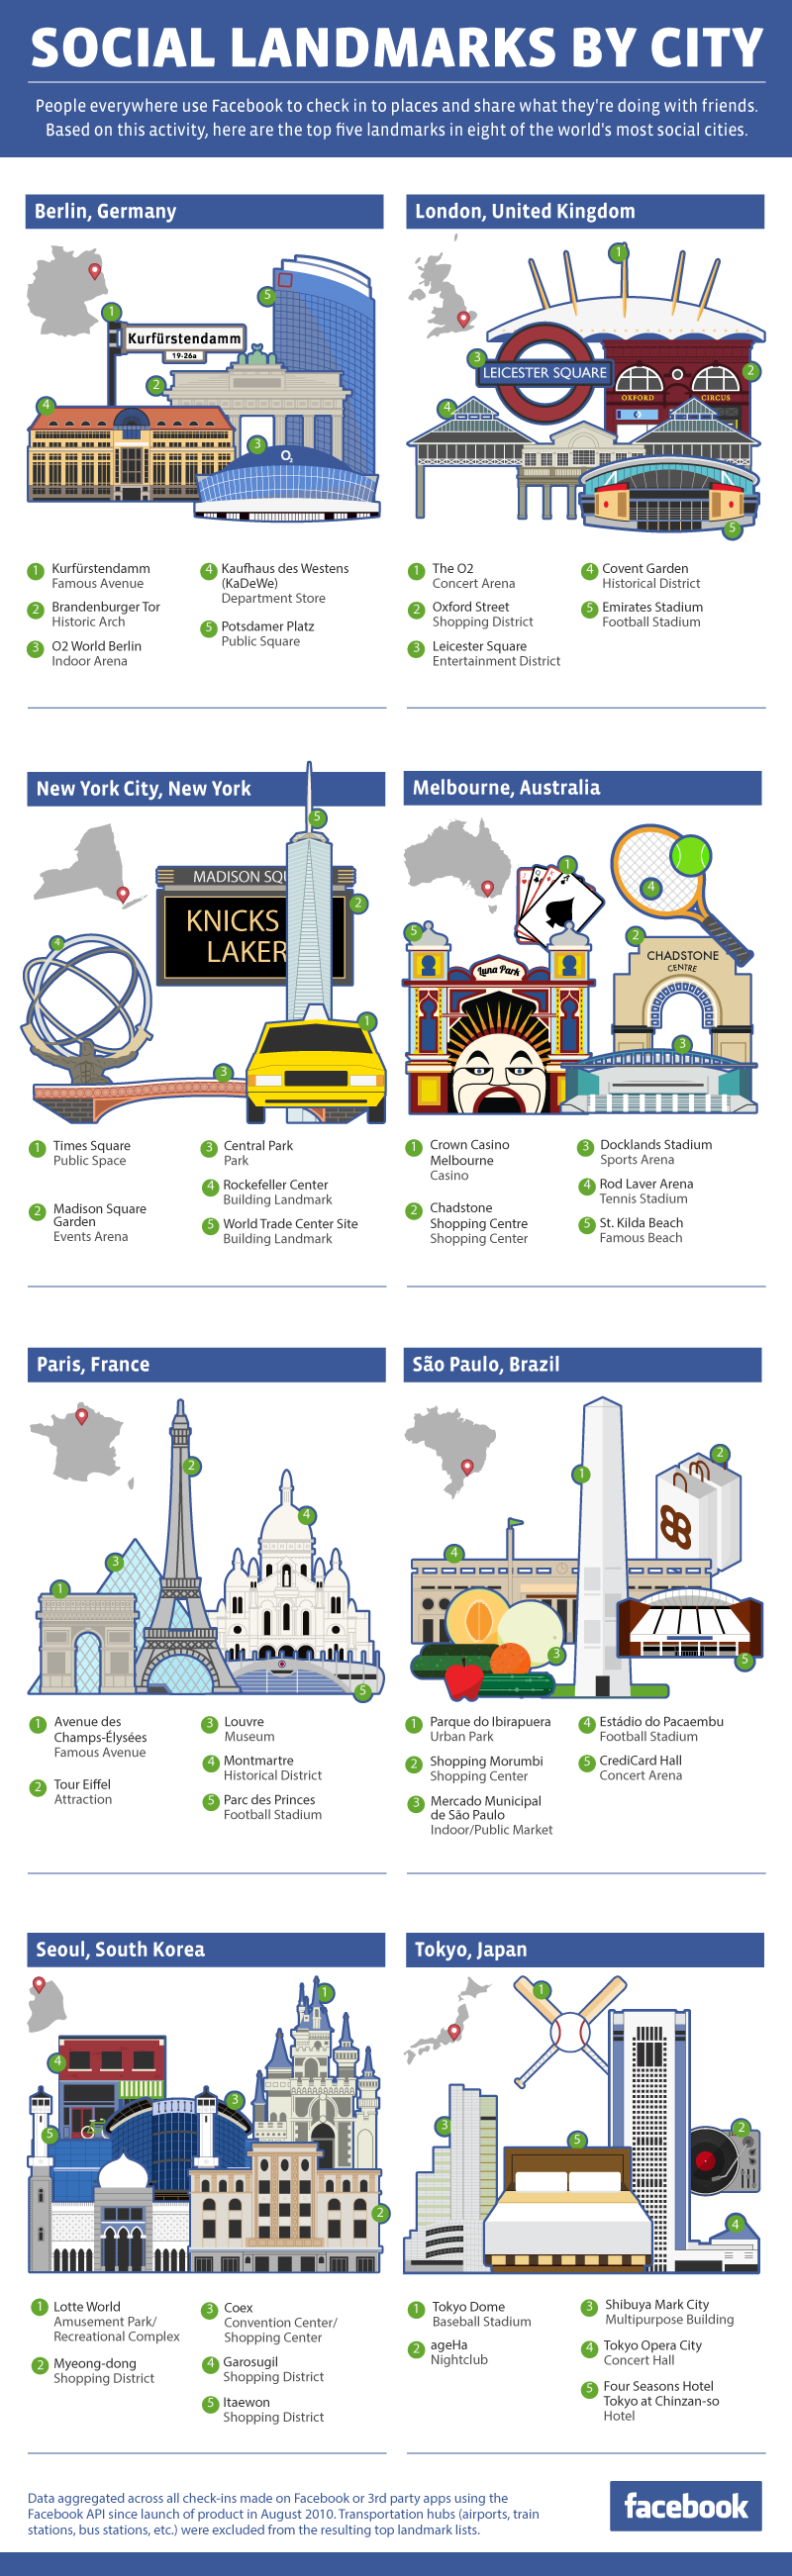 Infographic: Social Landmarks By City